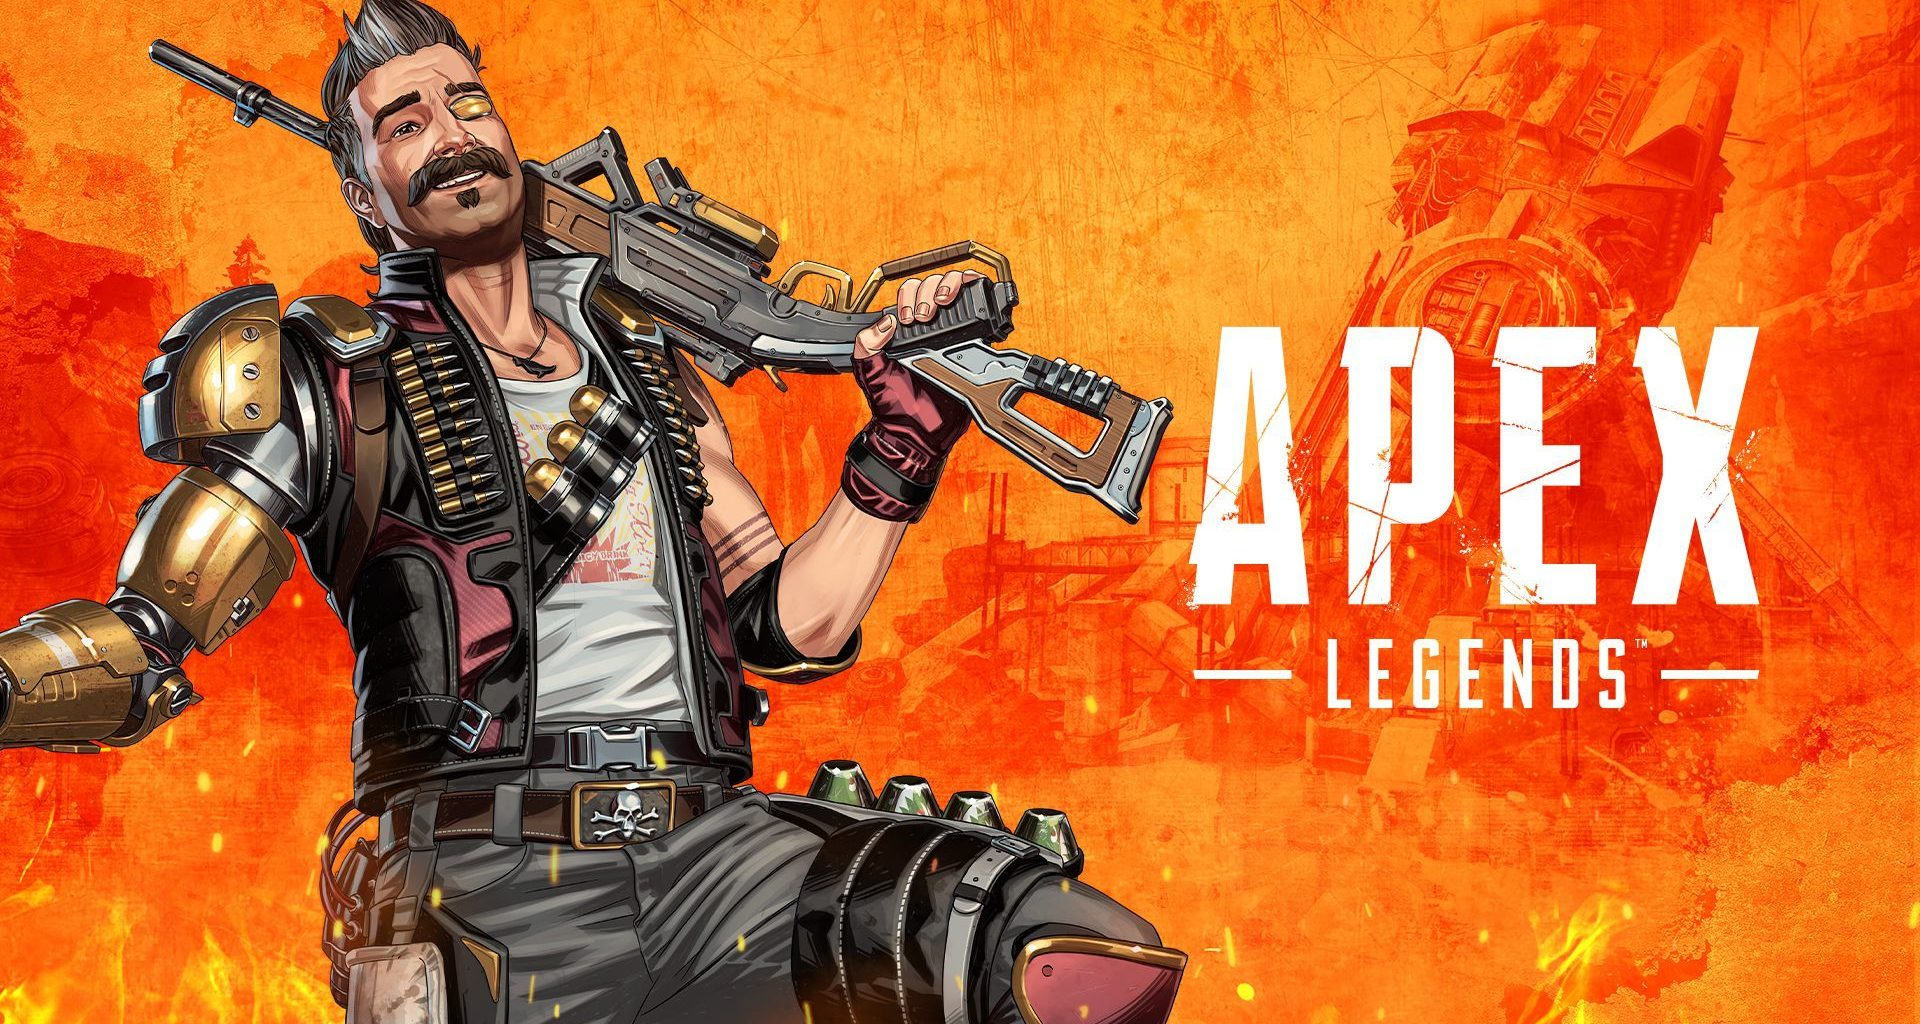 Apex Legends is coming to Nintendo Switch on 2nd February 2021